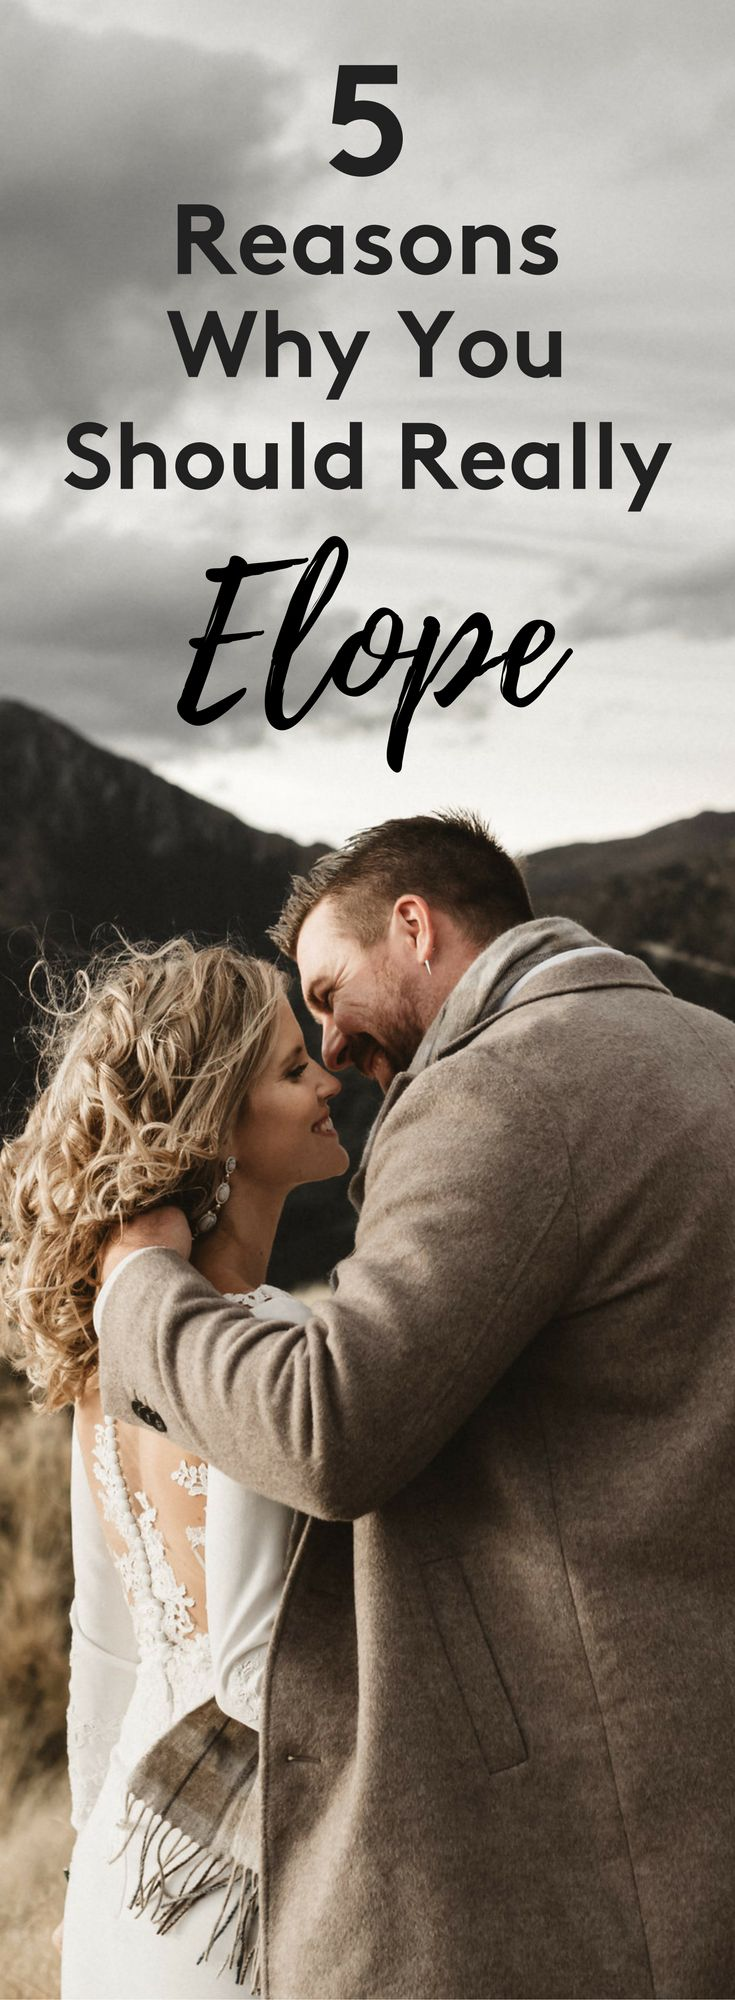 5 Reasons Why You Should Really Elope | Elopement Ideas | Adventurous Wedding Inspiration | Dawn Thomson Photography | For the Love of Stationery